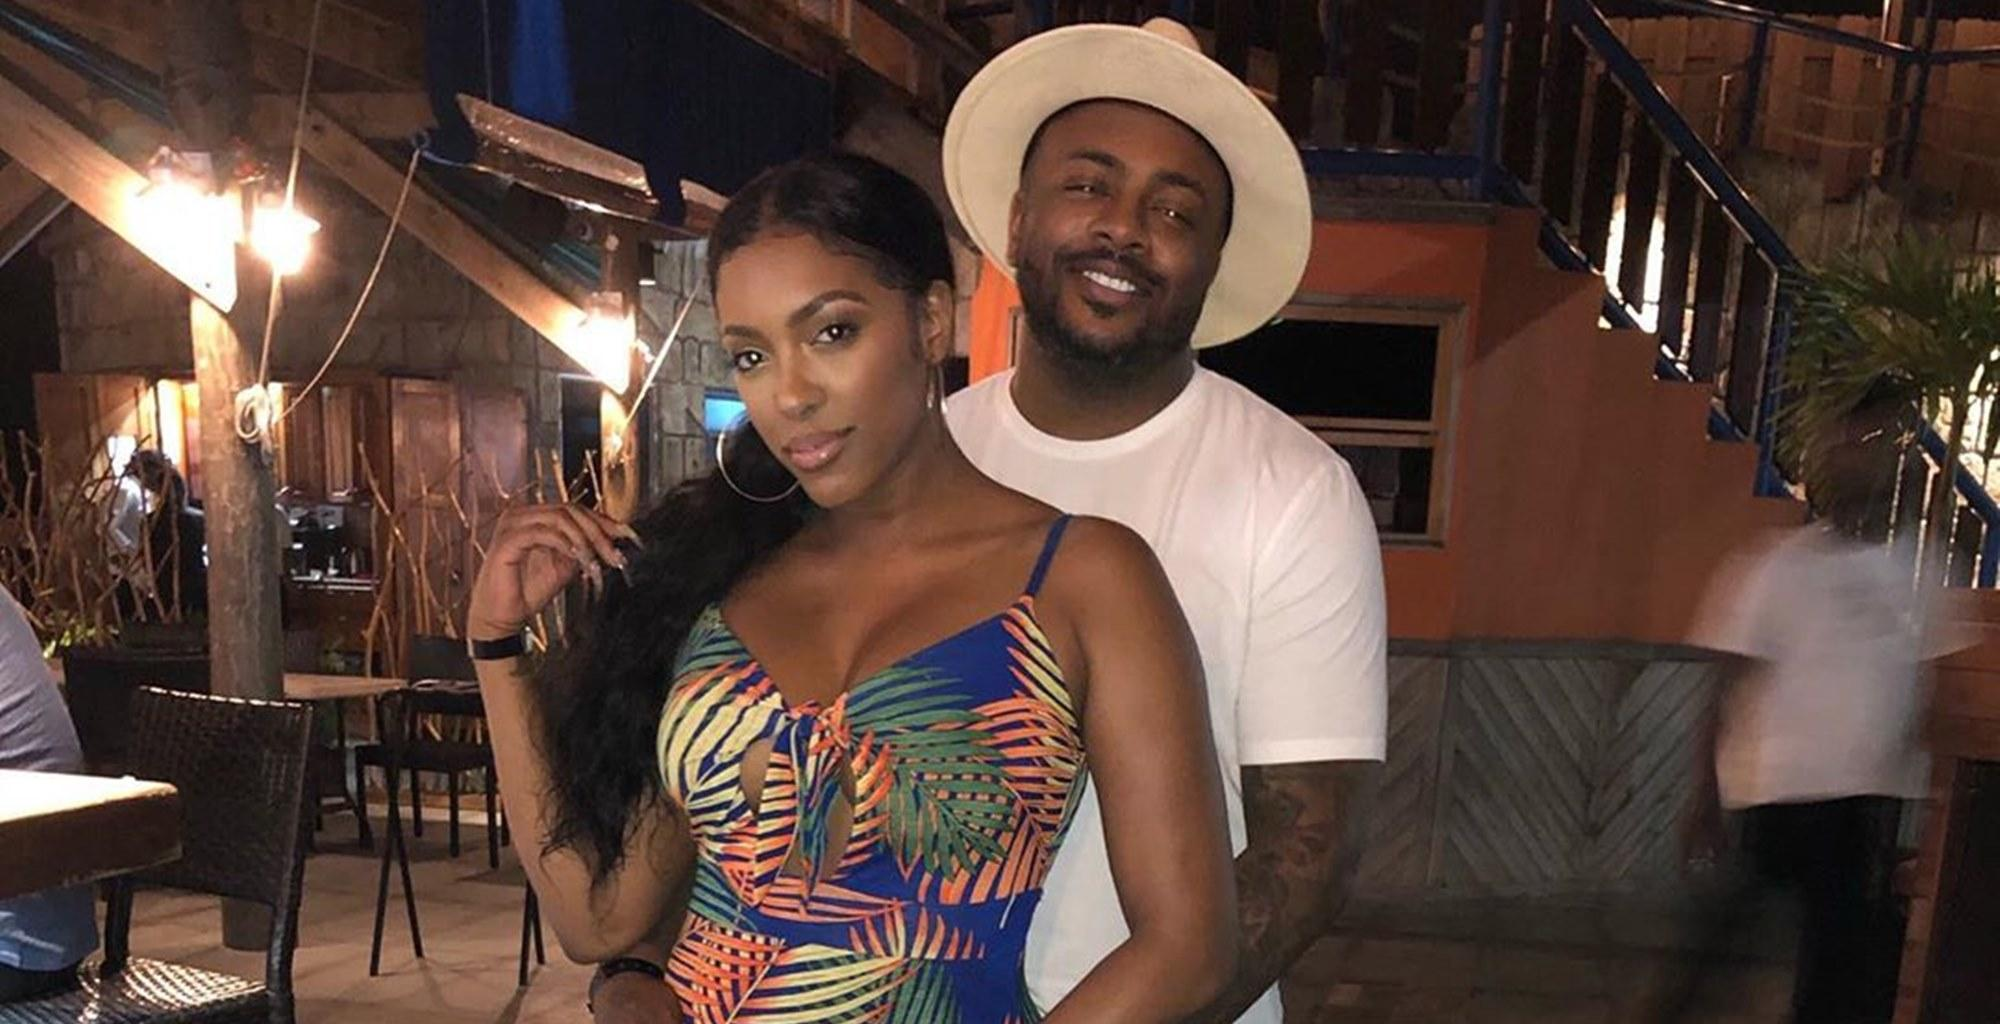 Porsha Williams Leaves Nothing To Fiancé Dennis McKinley's Imagination, And He Had A Very Manly Reaction, According To These Scandalous Photos